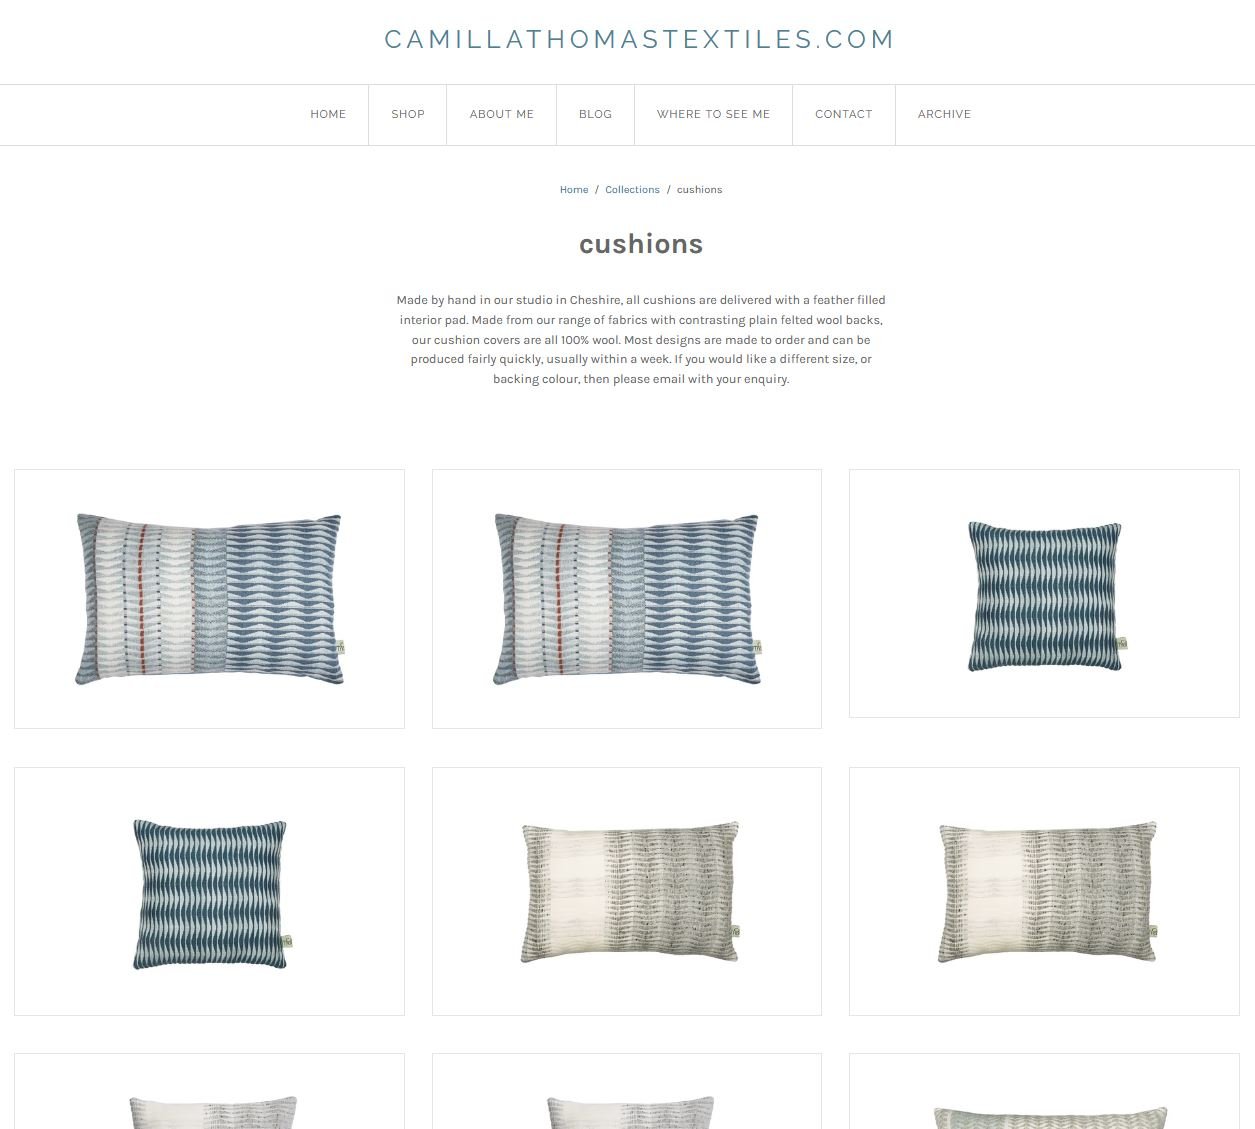 A screenshot from a clients website showing cutout white background images of cushions